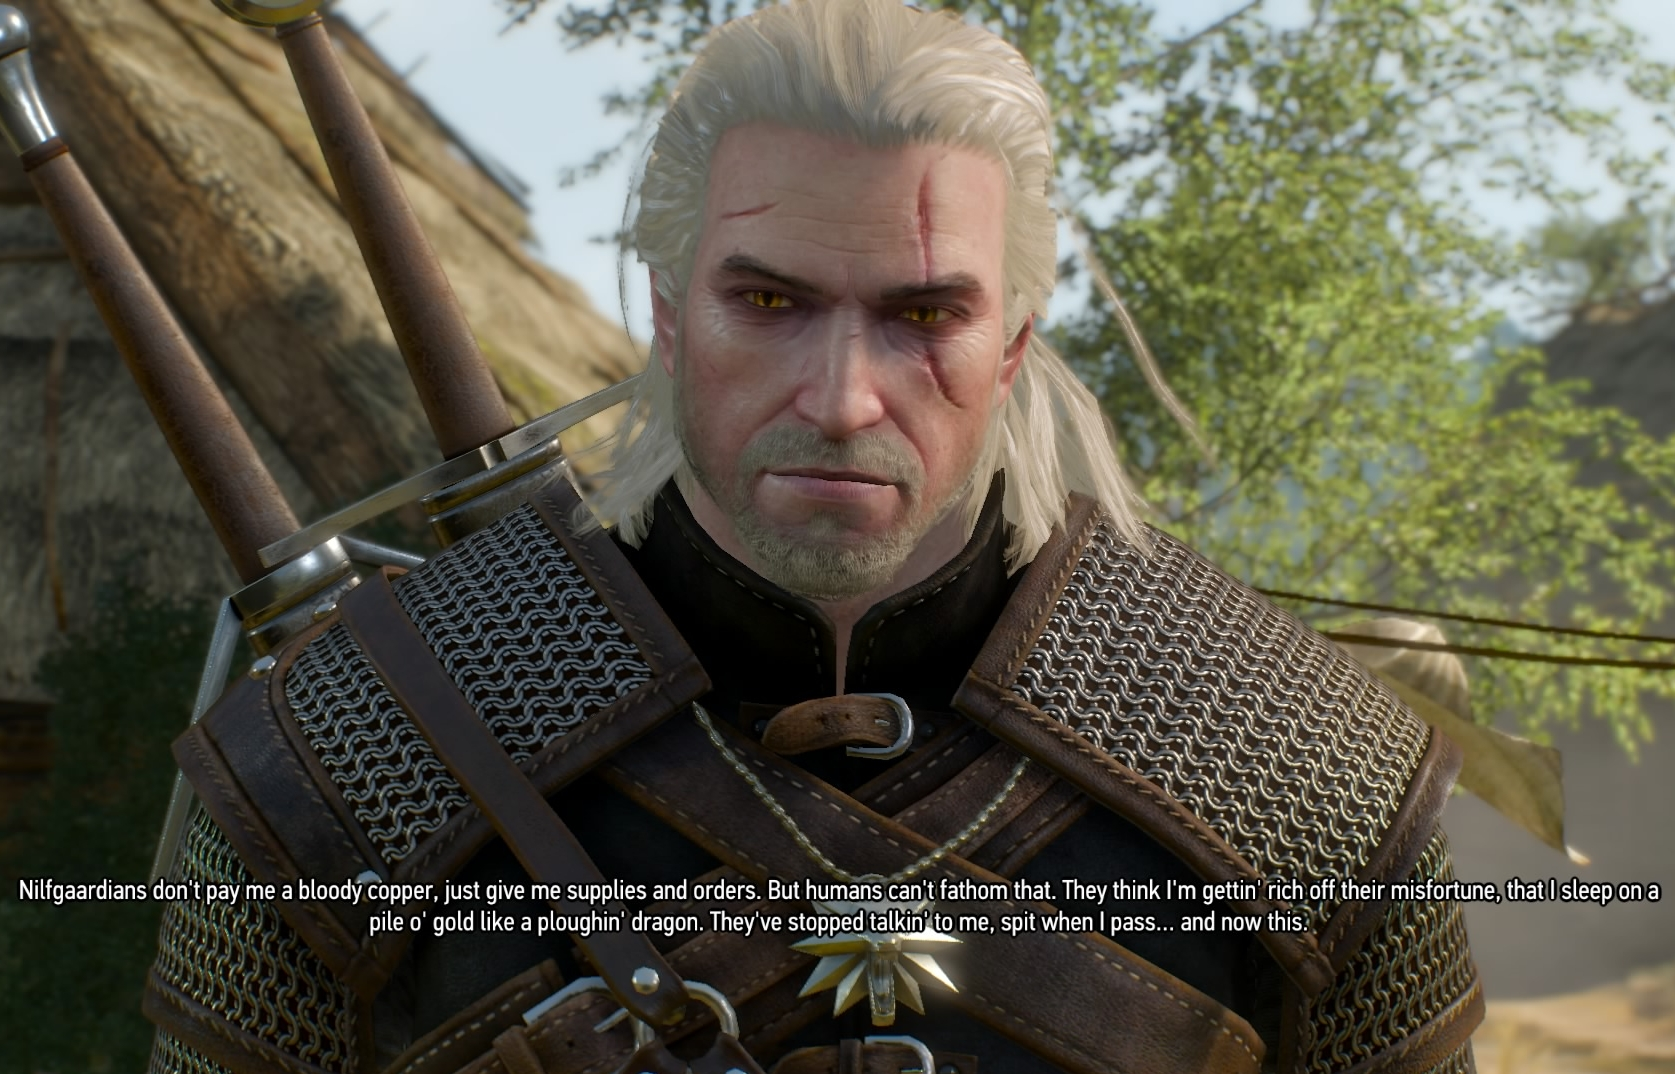 Dragonchasers » Its a shame about The Witcher III